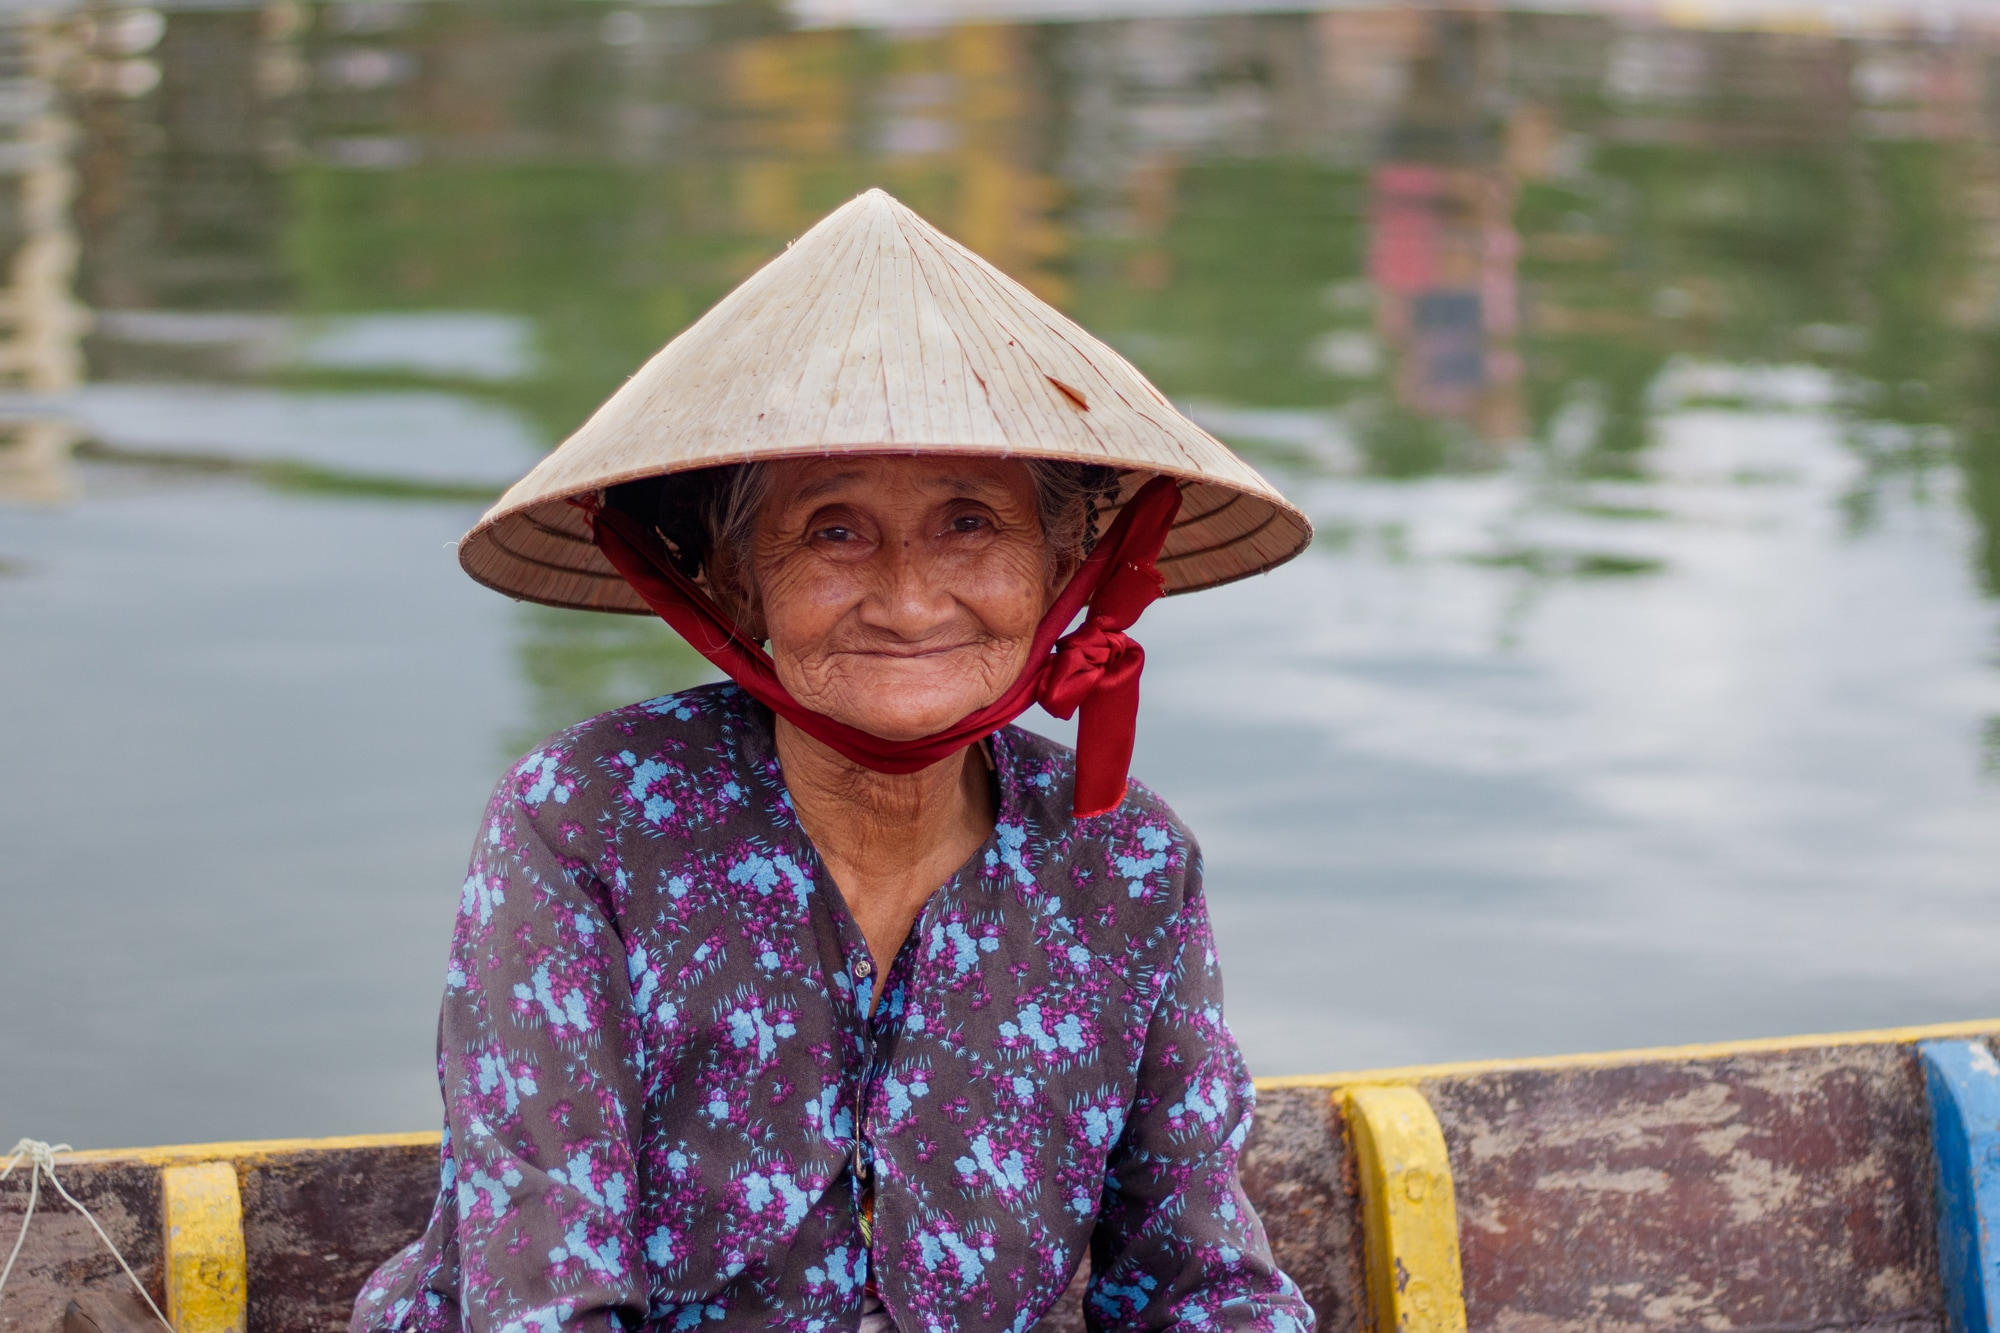 An elderly boat woman - probably the most recognisable face in Hoi An - smiles at camera.